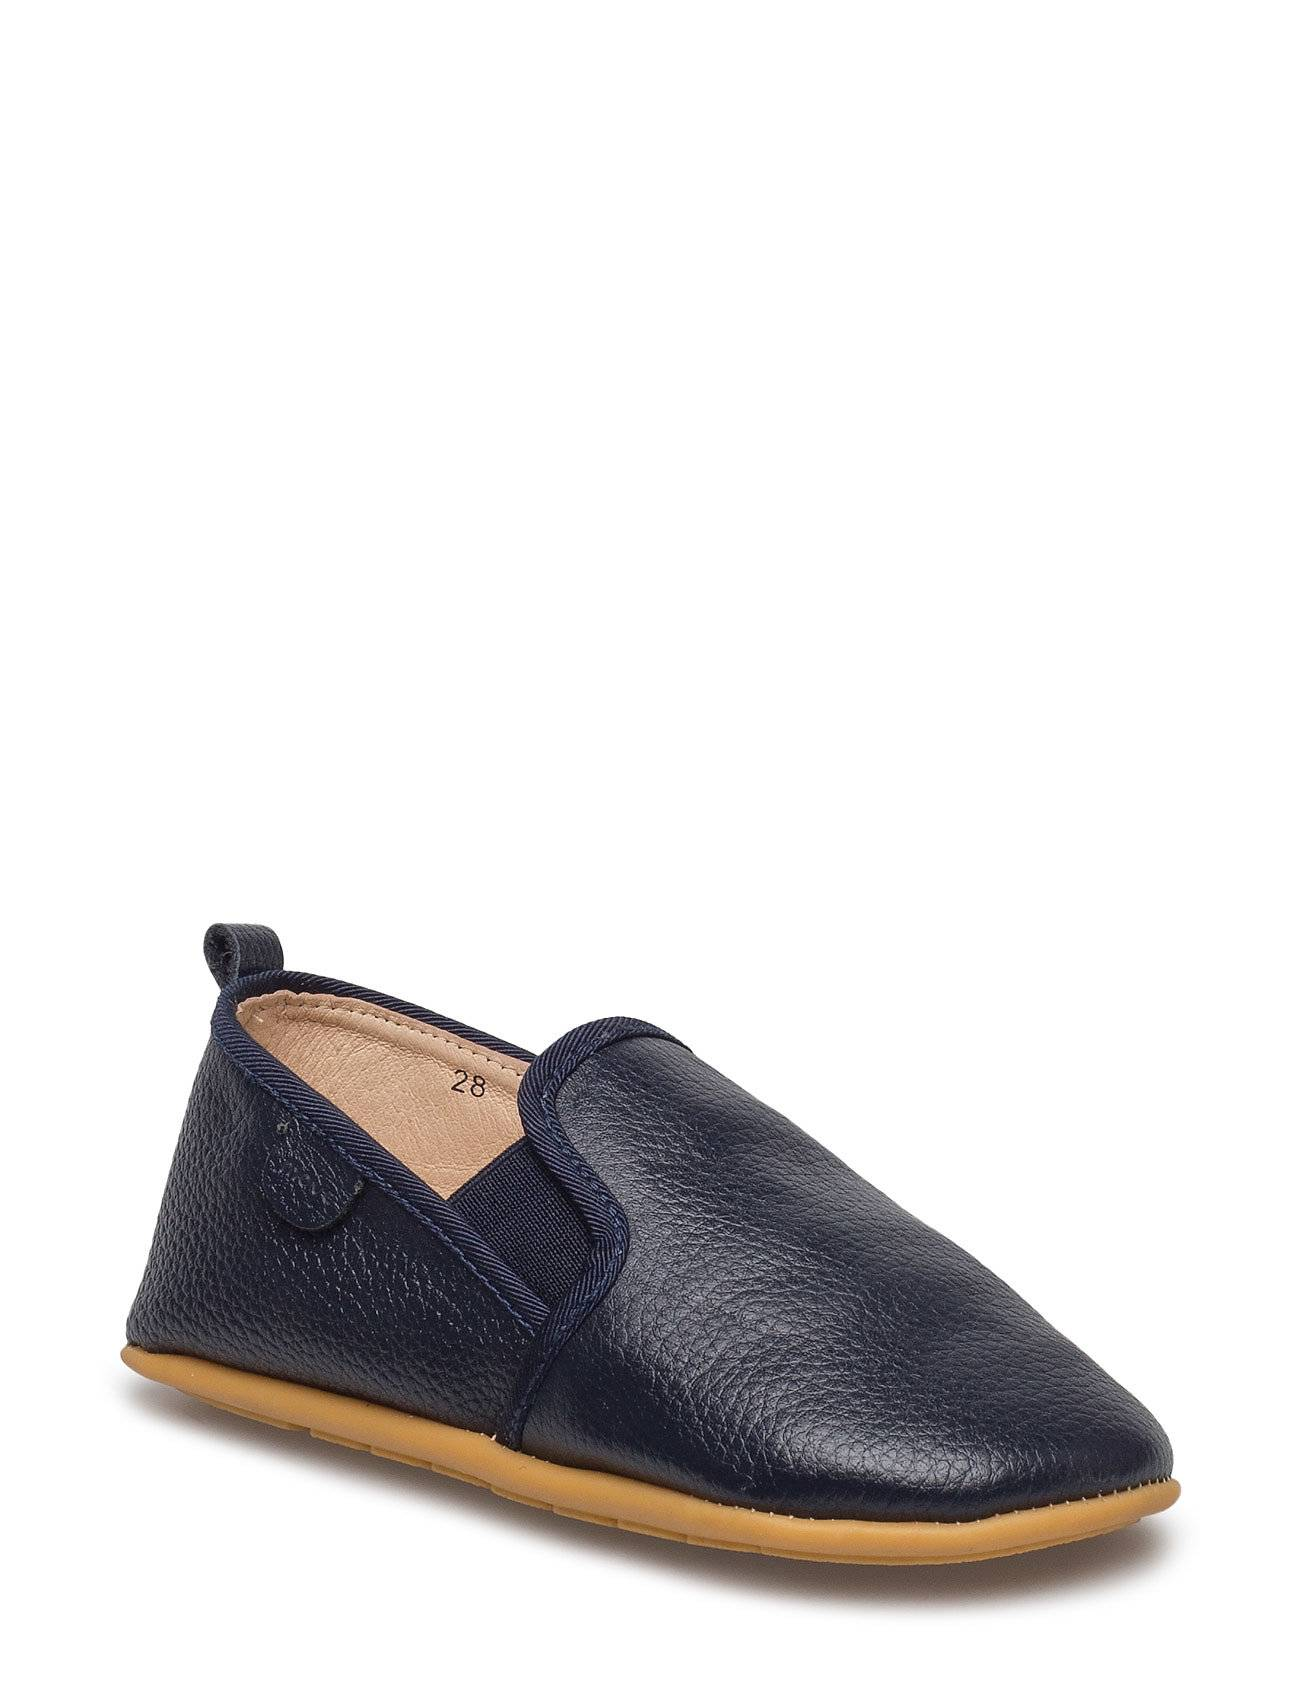 Move by Melton Prewalker - Slip-On